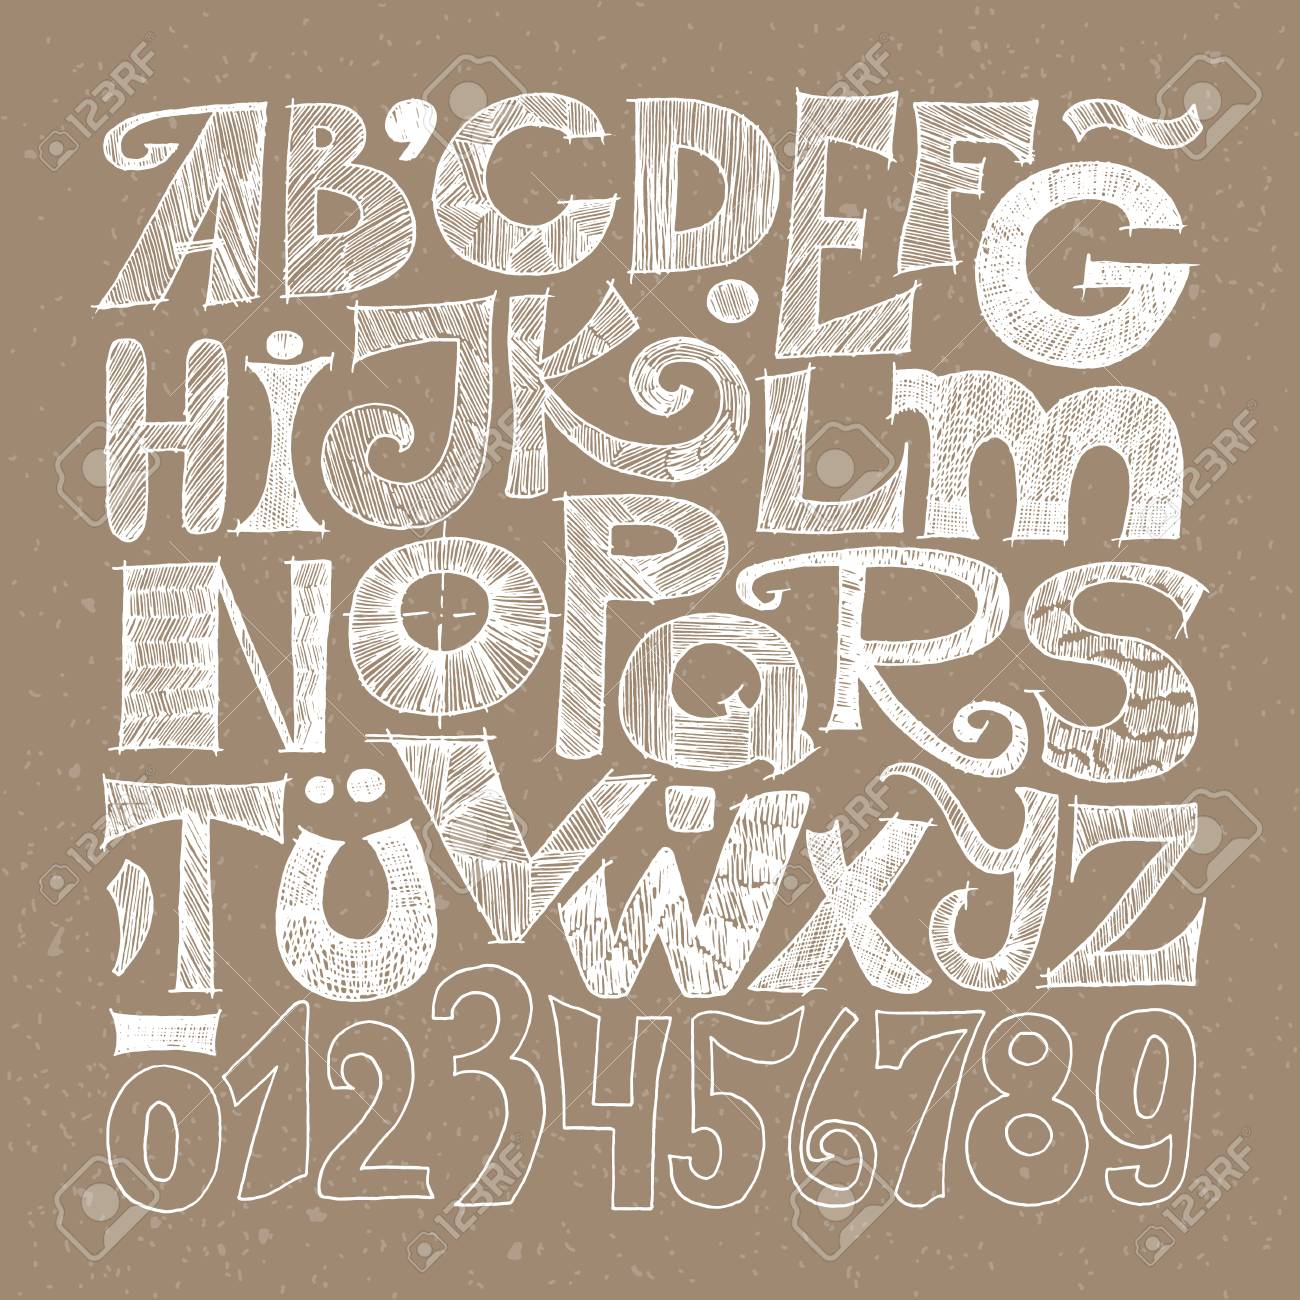 Hand Drawn Decorative Typography Sketched Grunge Alphabet And Numerals White On Craft Paper Stock